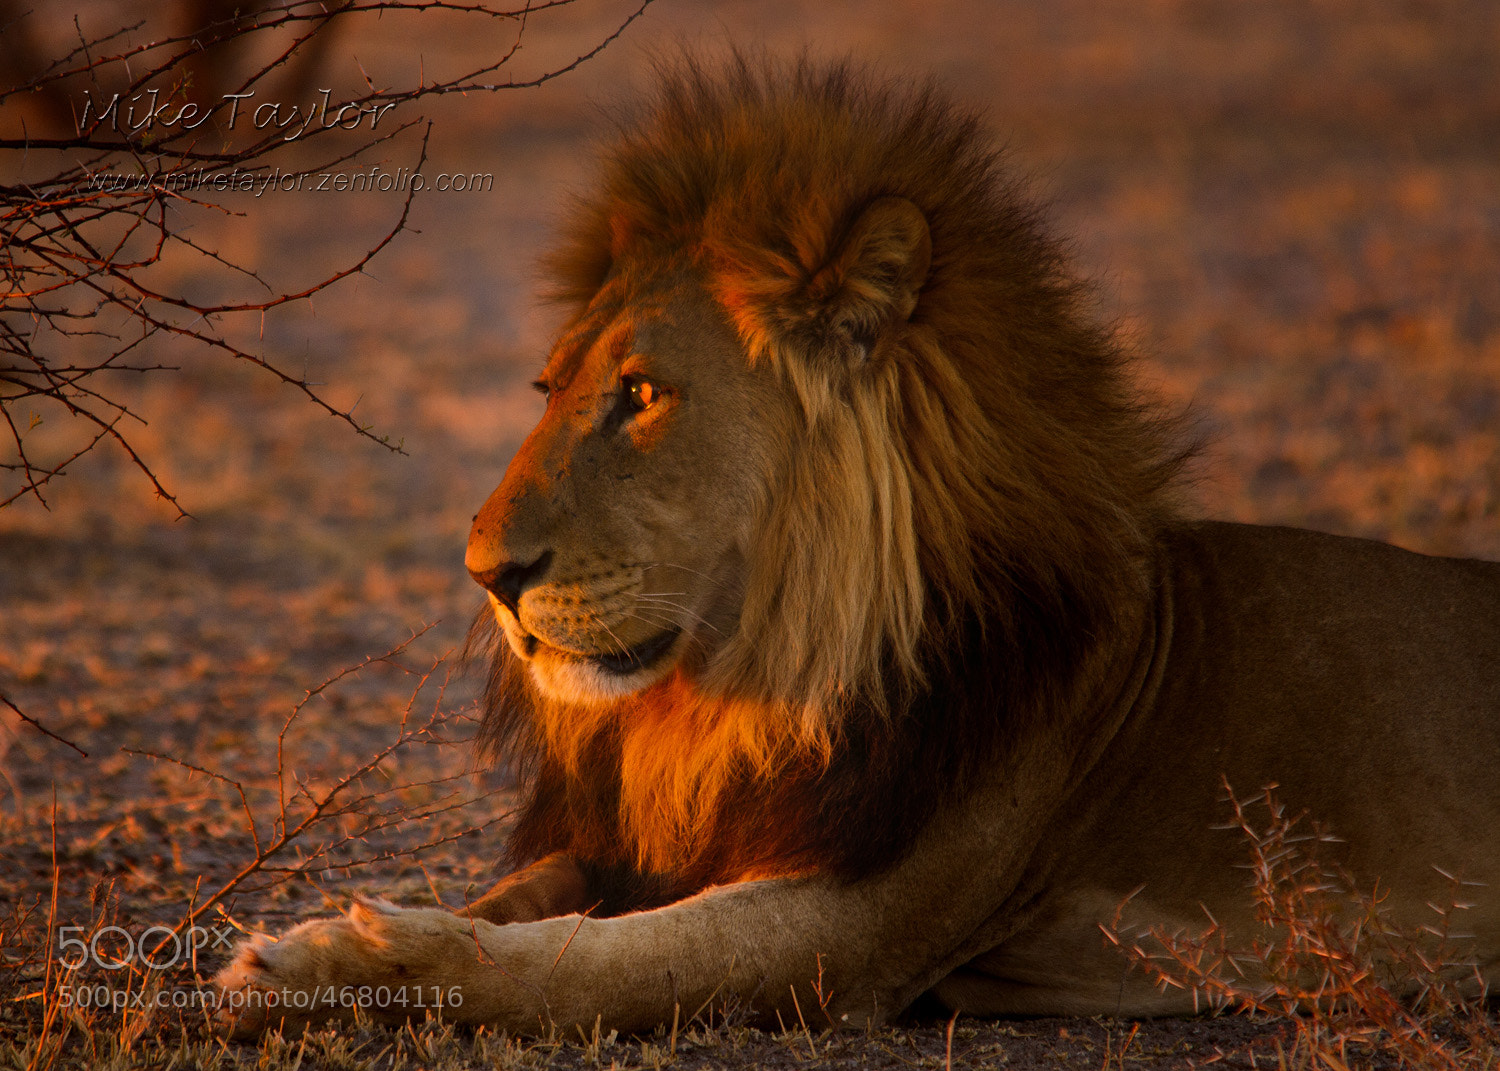 Photograph Enjoying the Last Rays by Mike Taylor on 500px